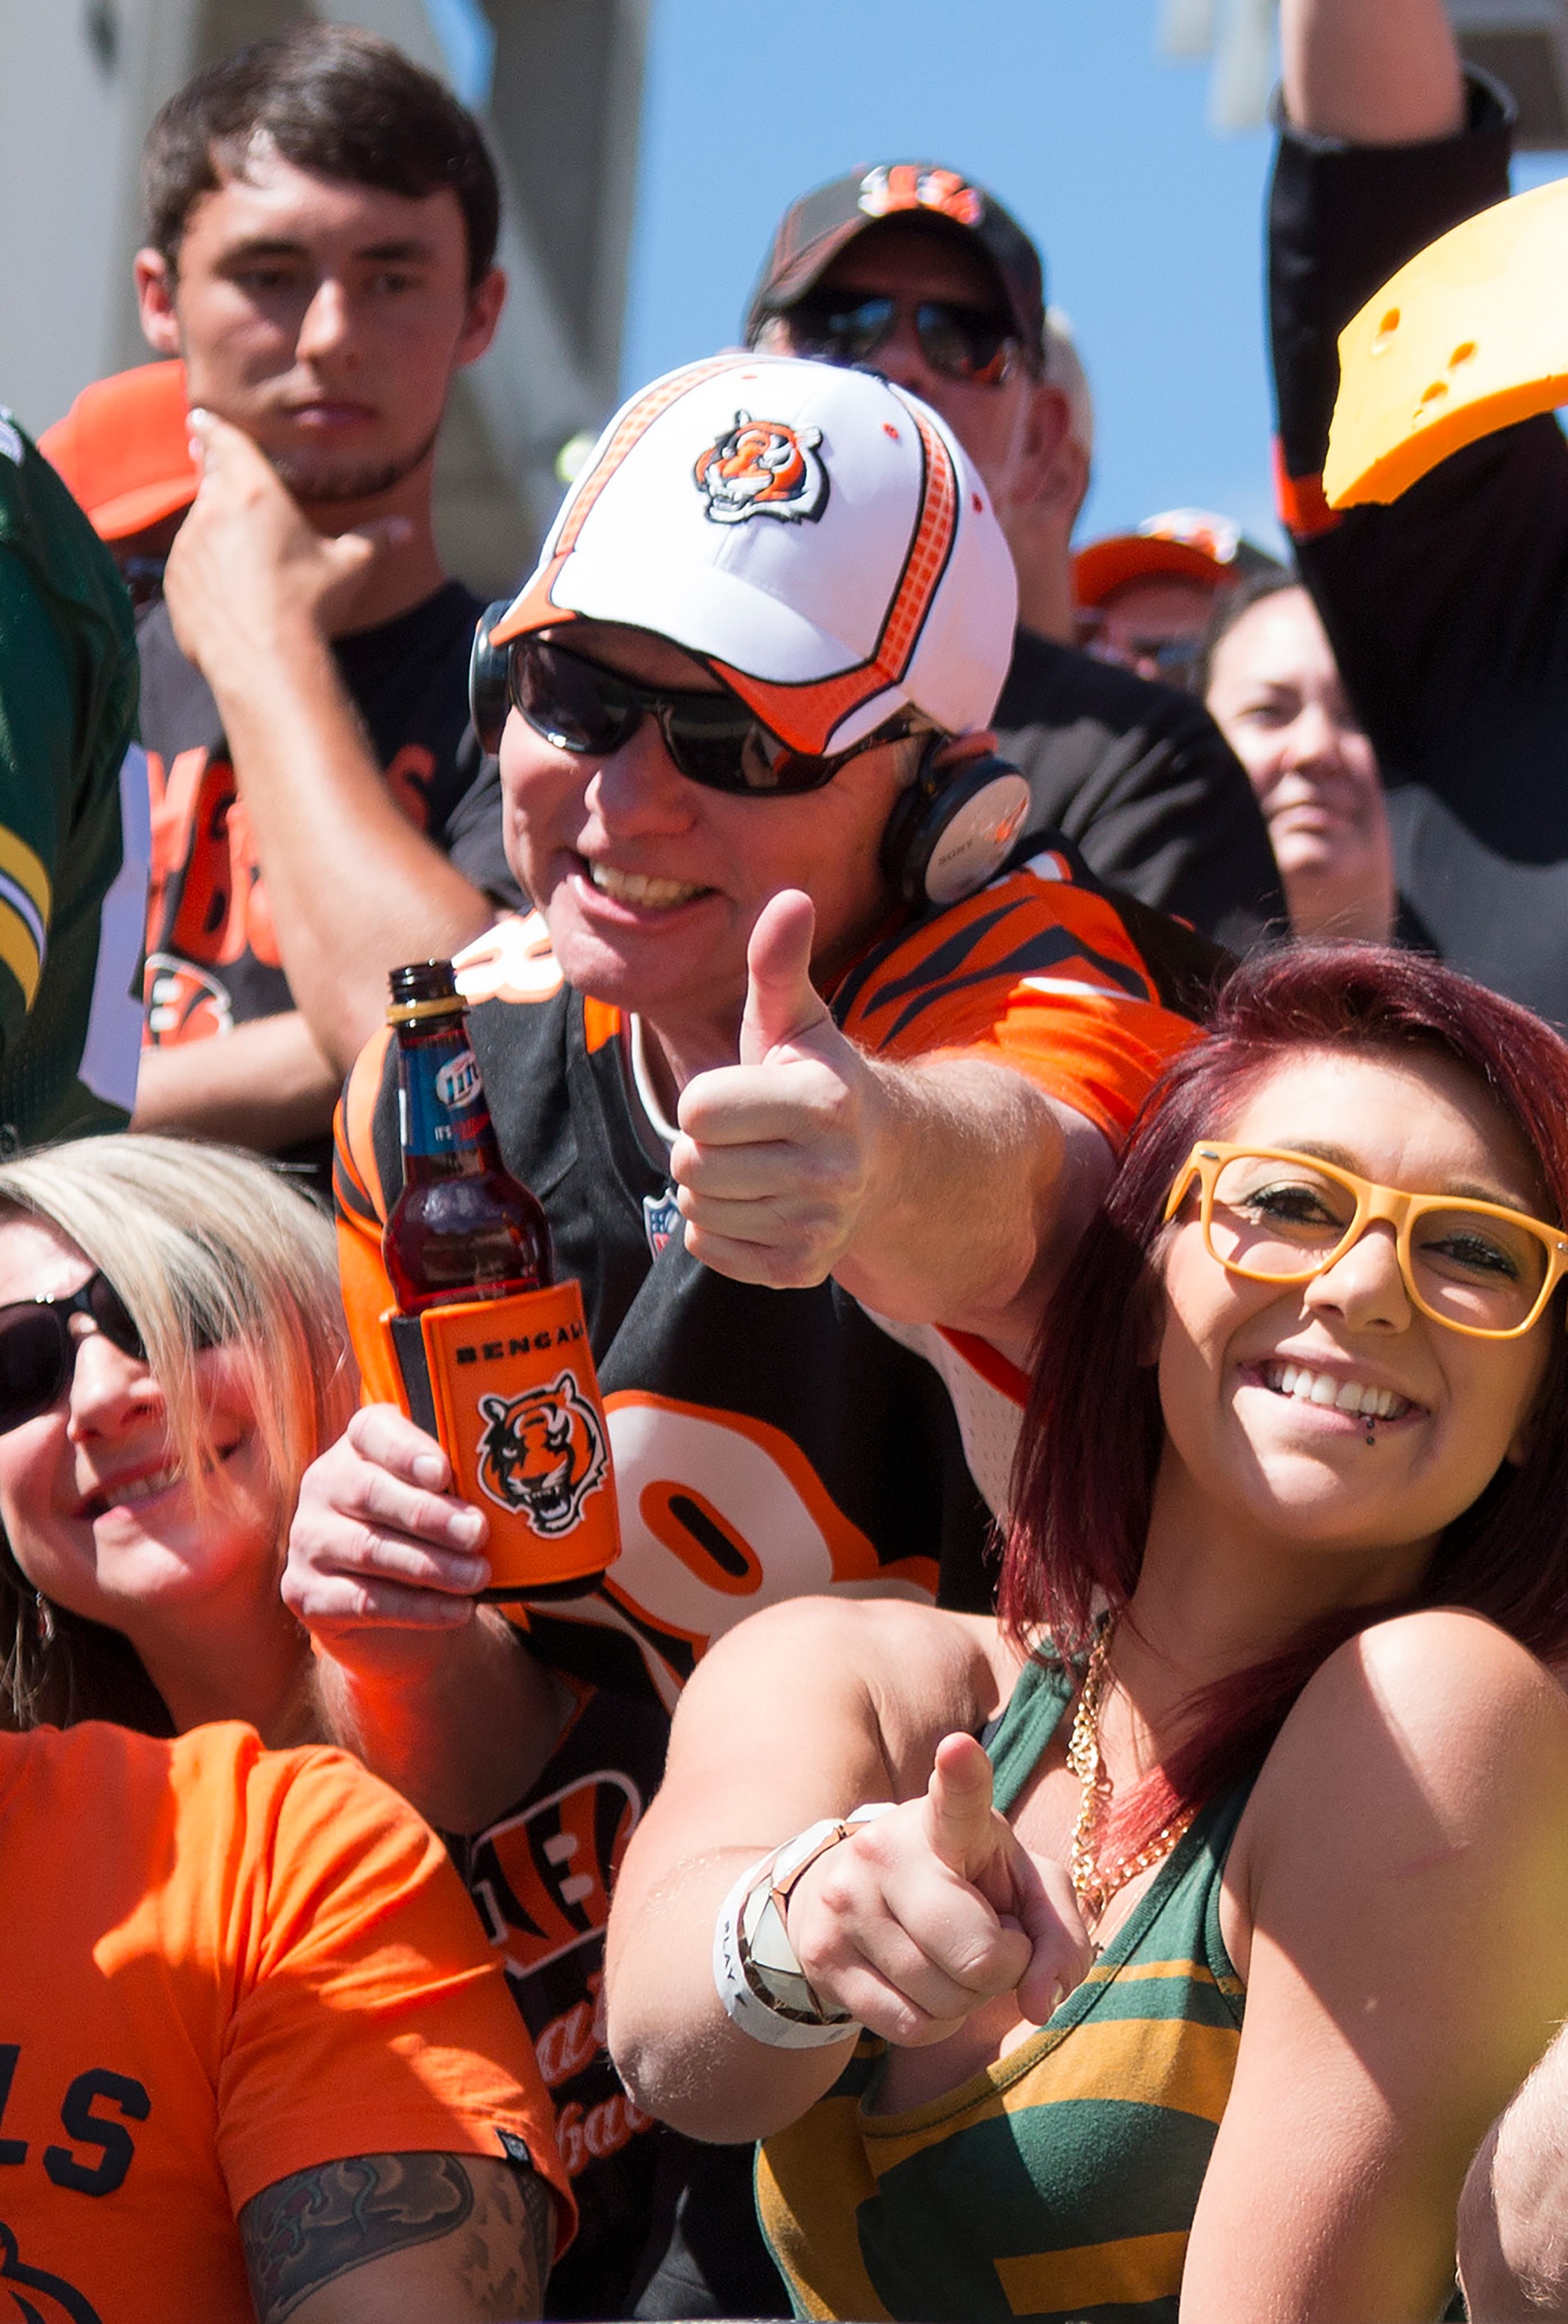 Fans of the Bengals enjoy the nice weather during the National Football League game between the Green Bay Packers and the Cincinnati Bengals at Paul Brown Stadium, September 22, 2013.